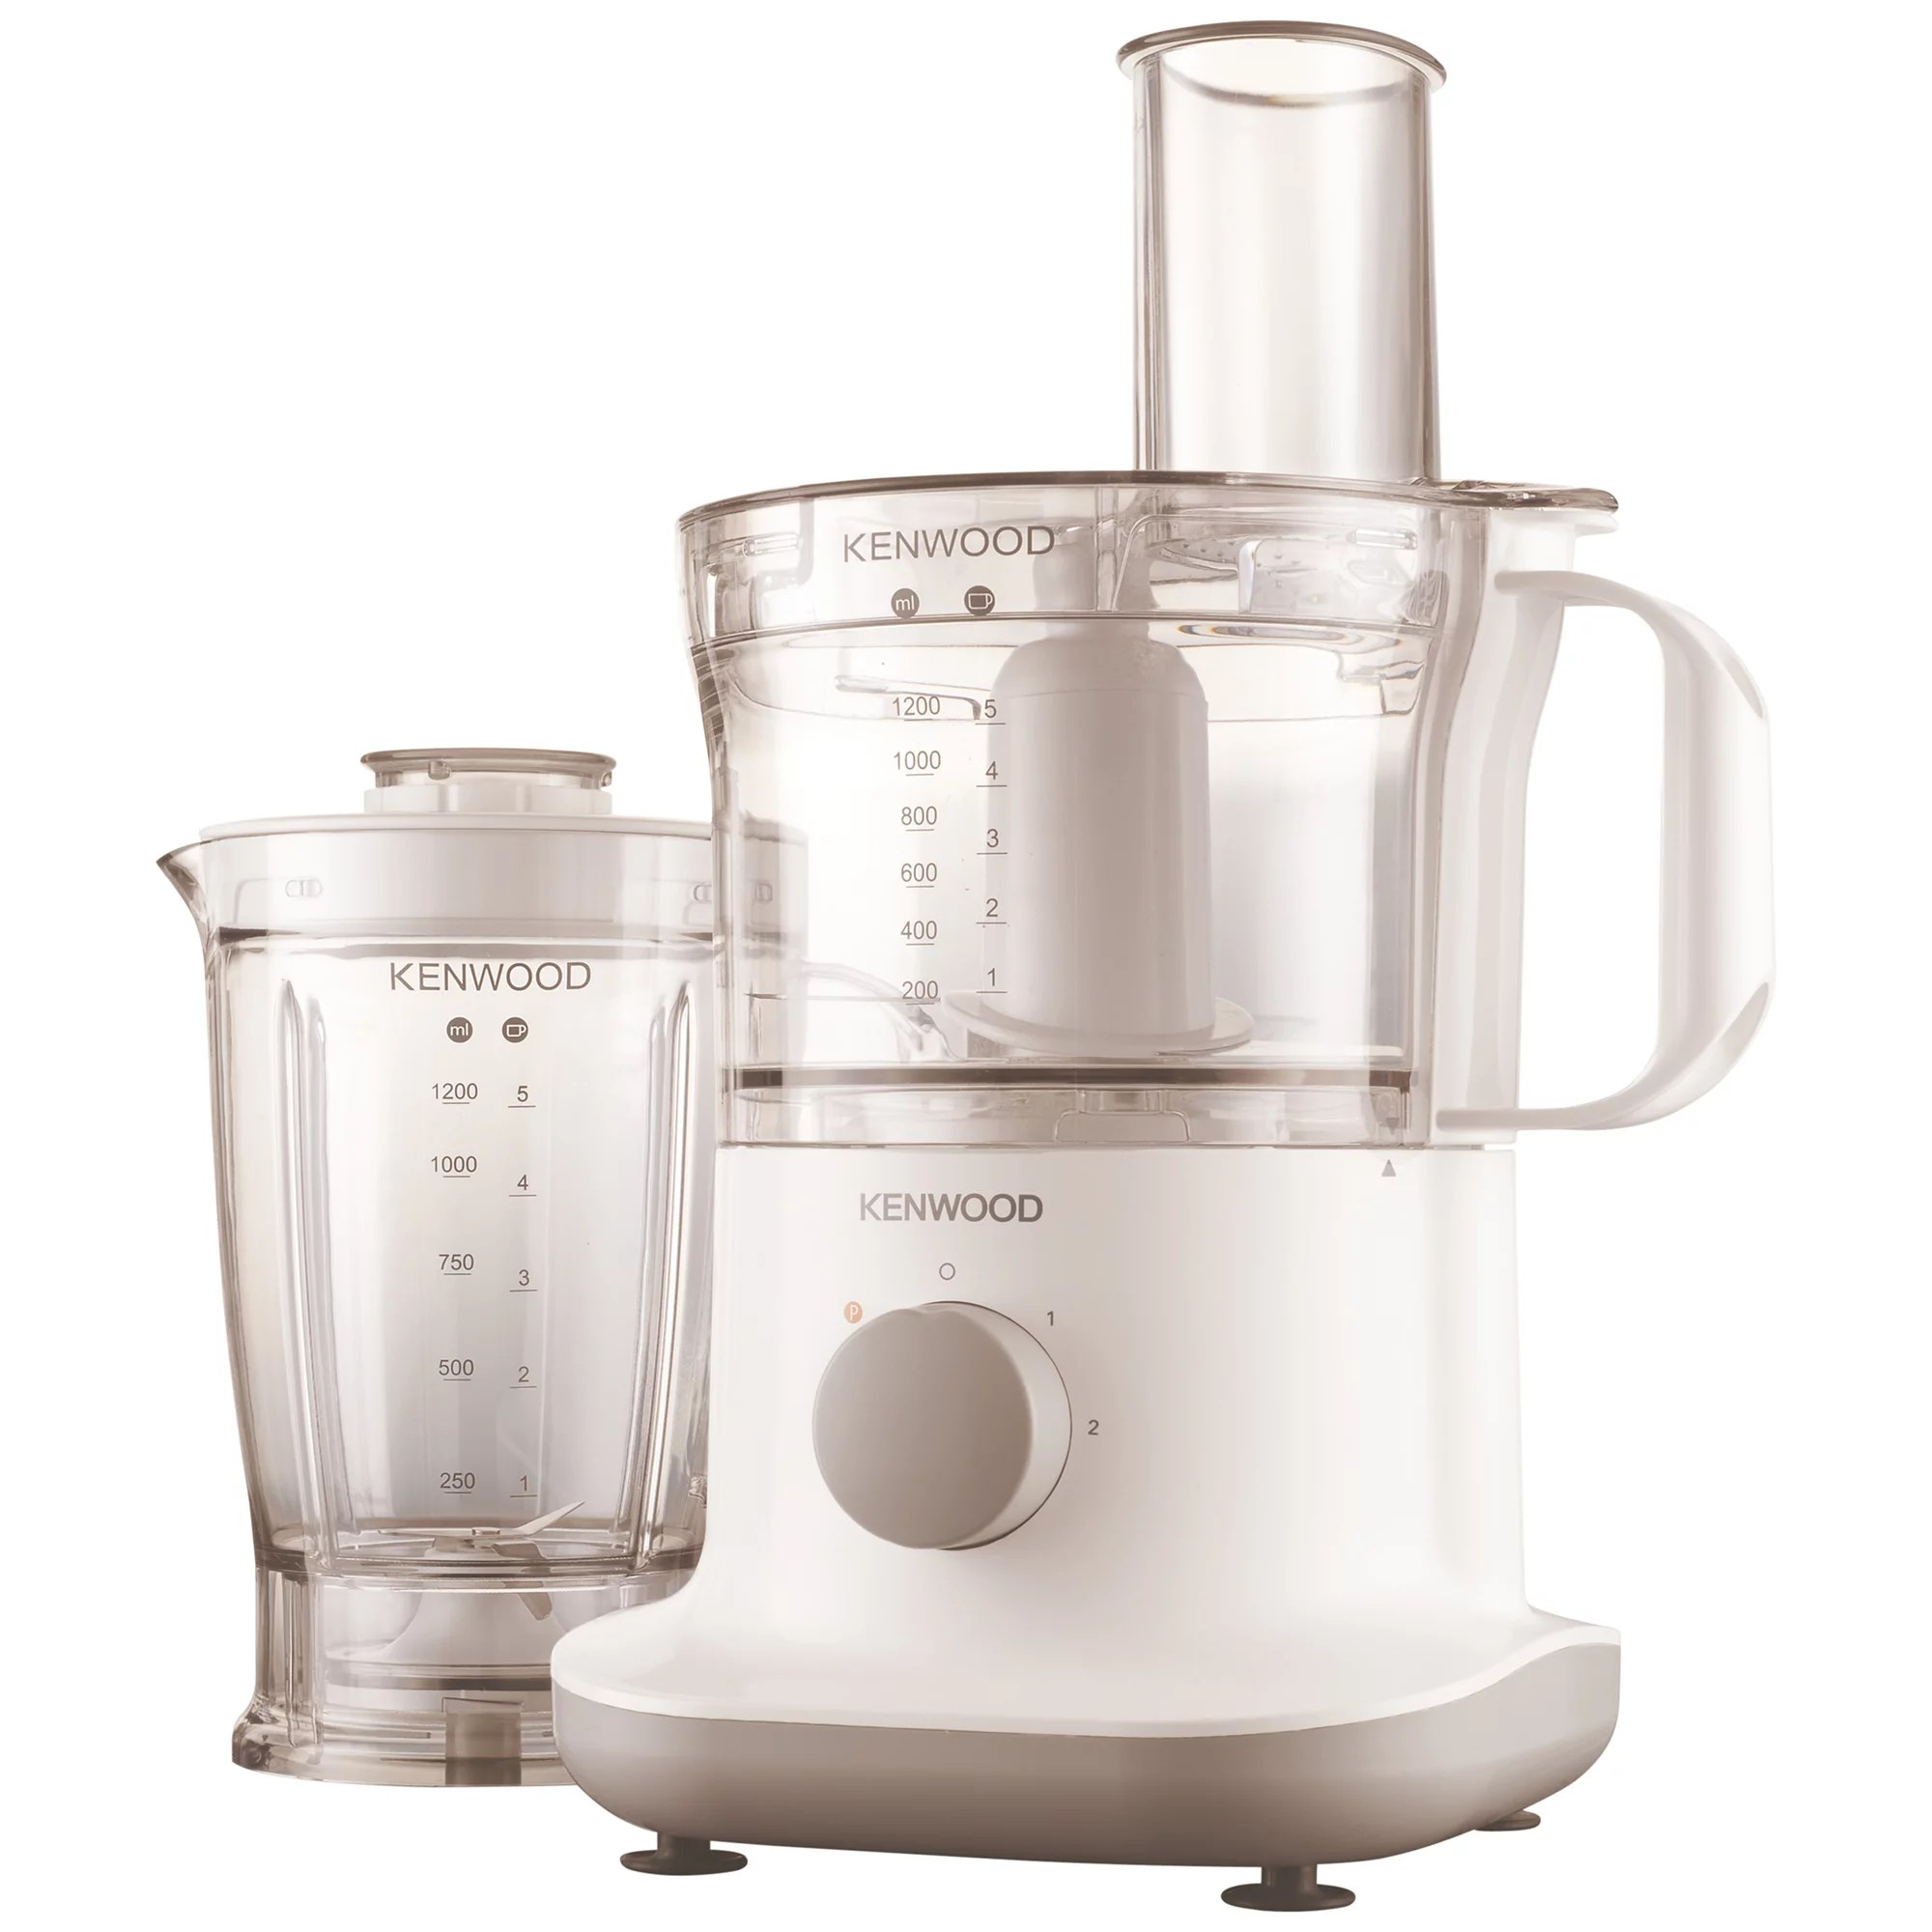 Kenwood Food Processor Compact Kenwood Fpp220 Multipro Compact Food Processor White At